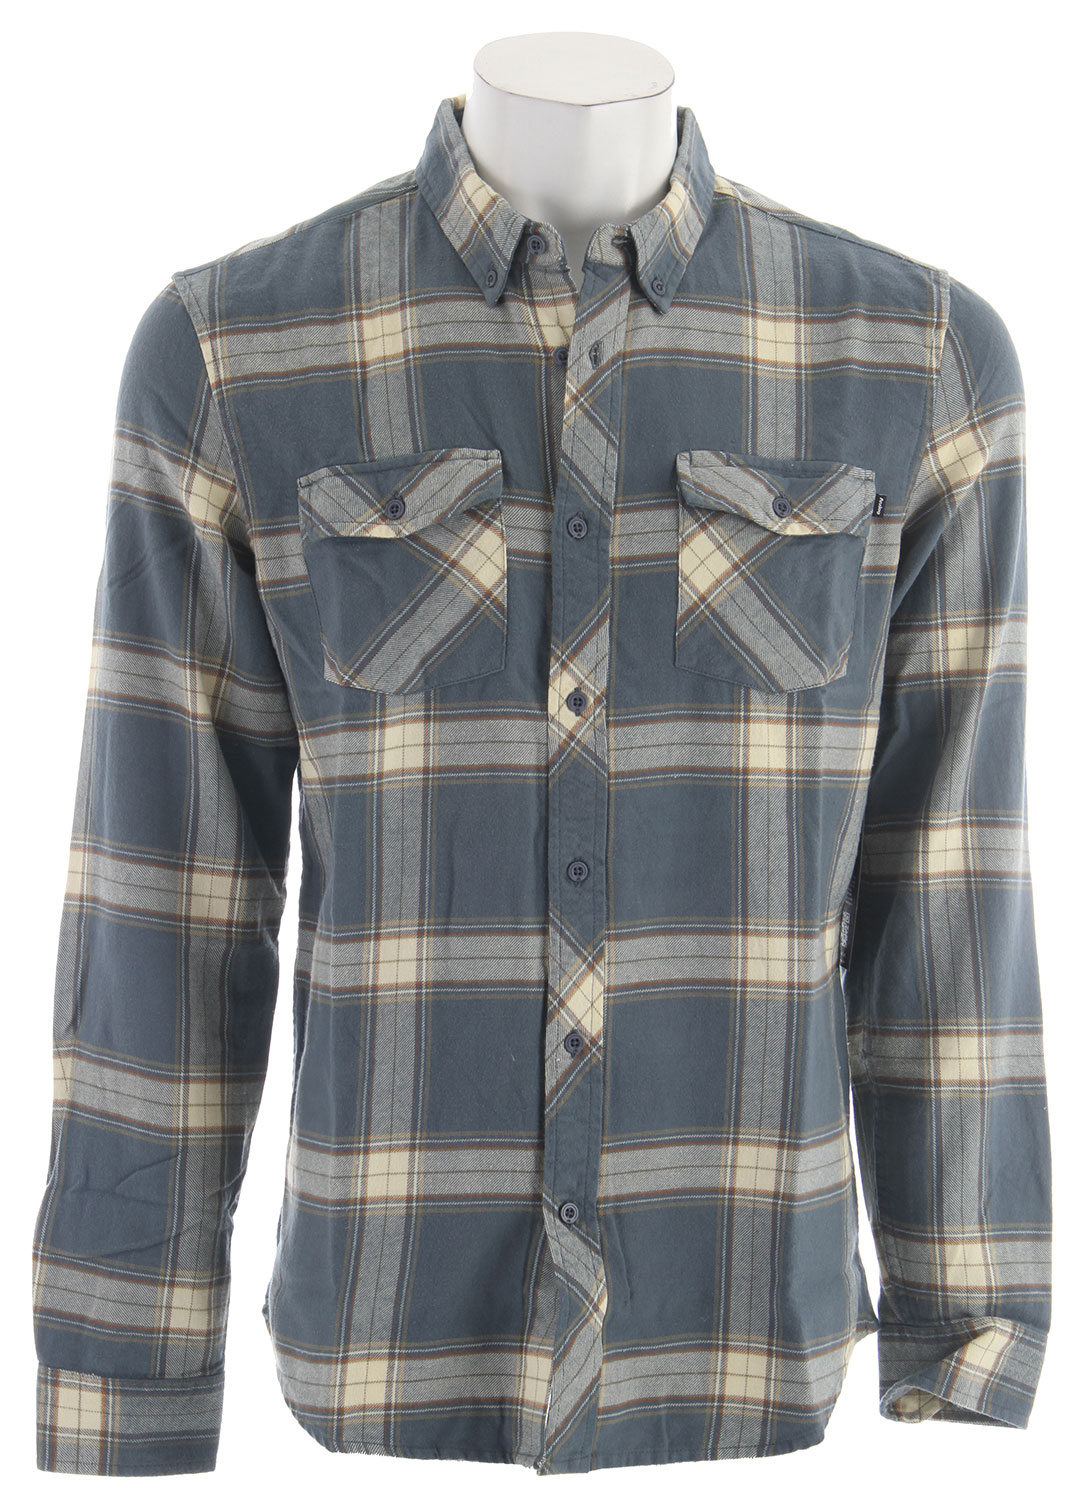 Guns and Military Key Features of the Analog Brody L/S Flannel Slim fit button front flannel shirt with double flap bias cut pockets and denim selvage taping detail at inner neck Classic mid scale brushed plaid with Wheel Wash and over dye finish on Navy and Cadet colorways 100% cotton - $38.95